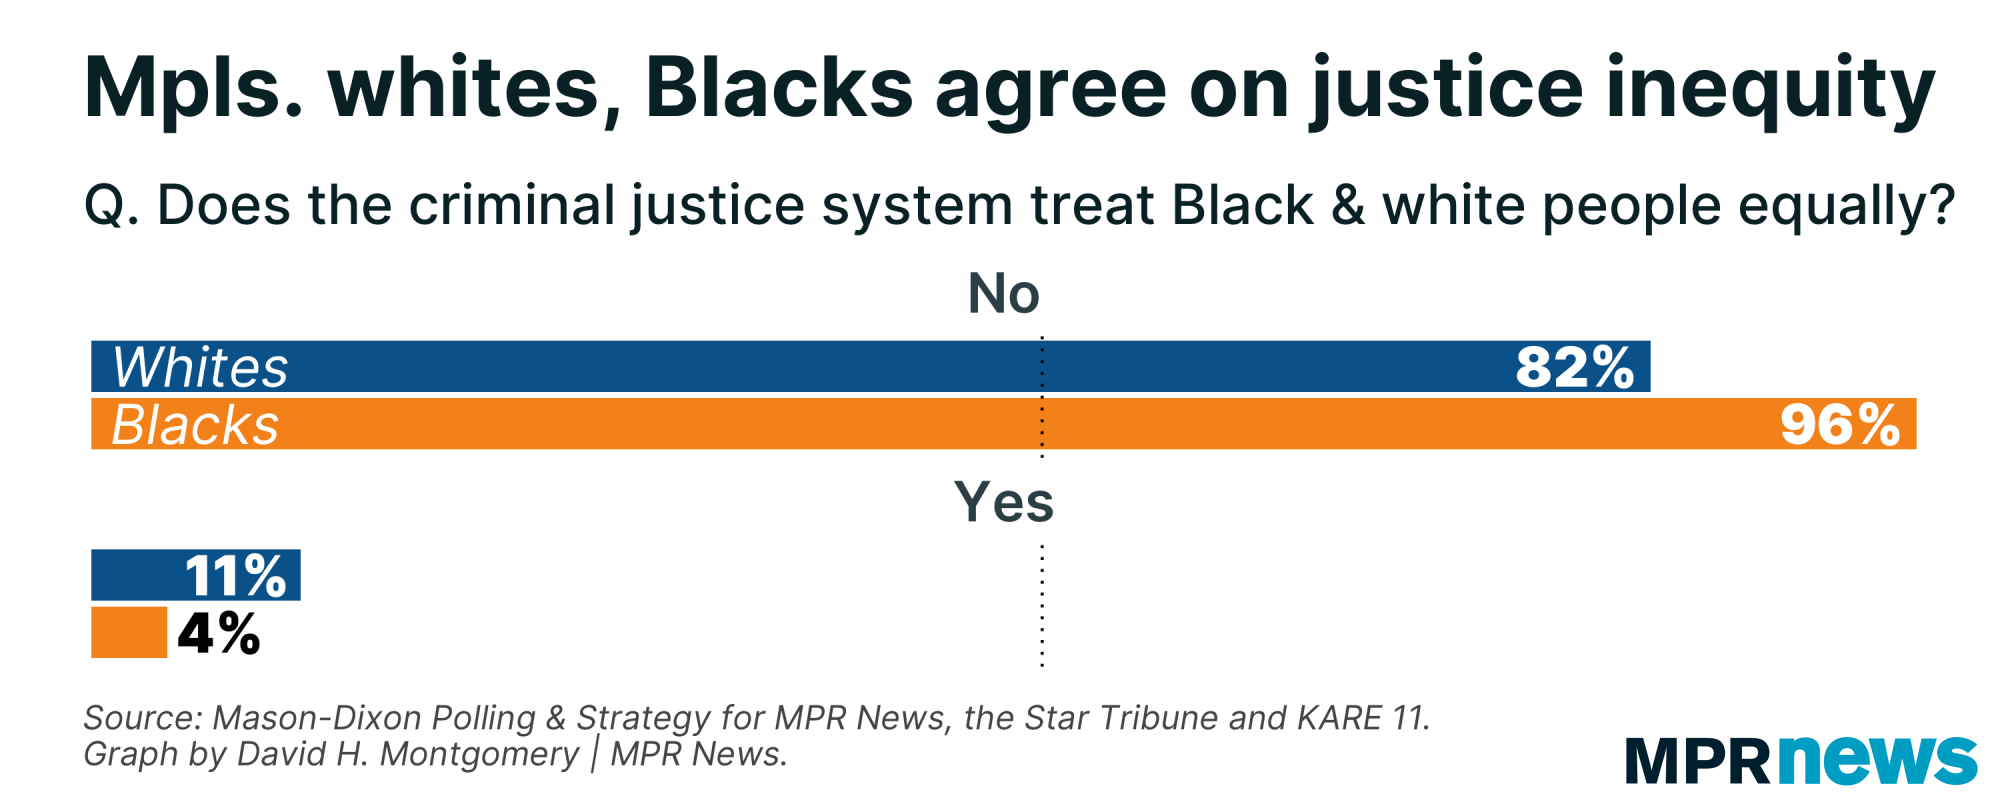 Black and white Minneapolis voters alike see racial inequity in justice.